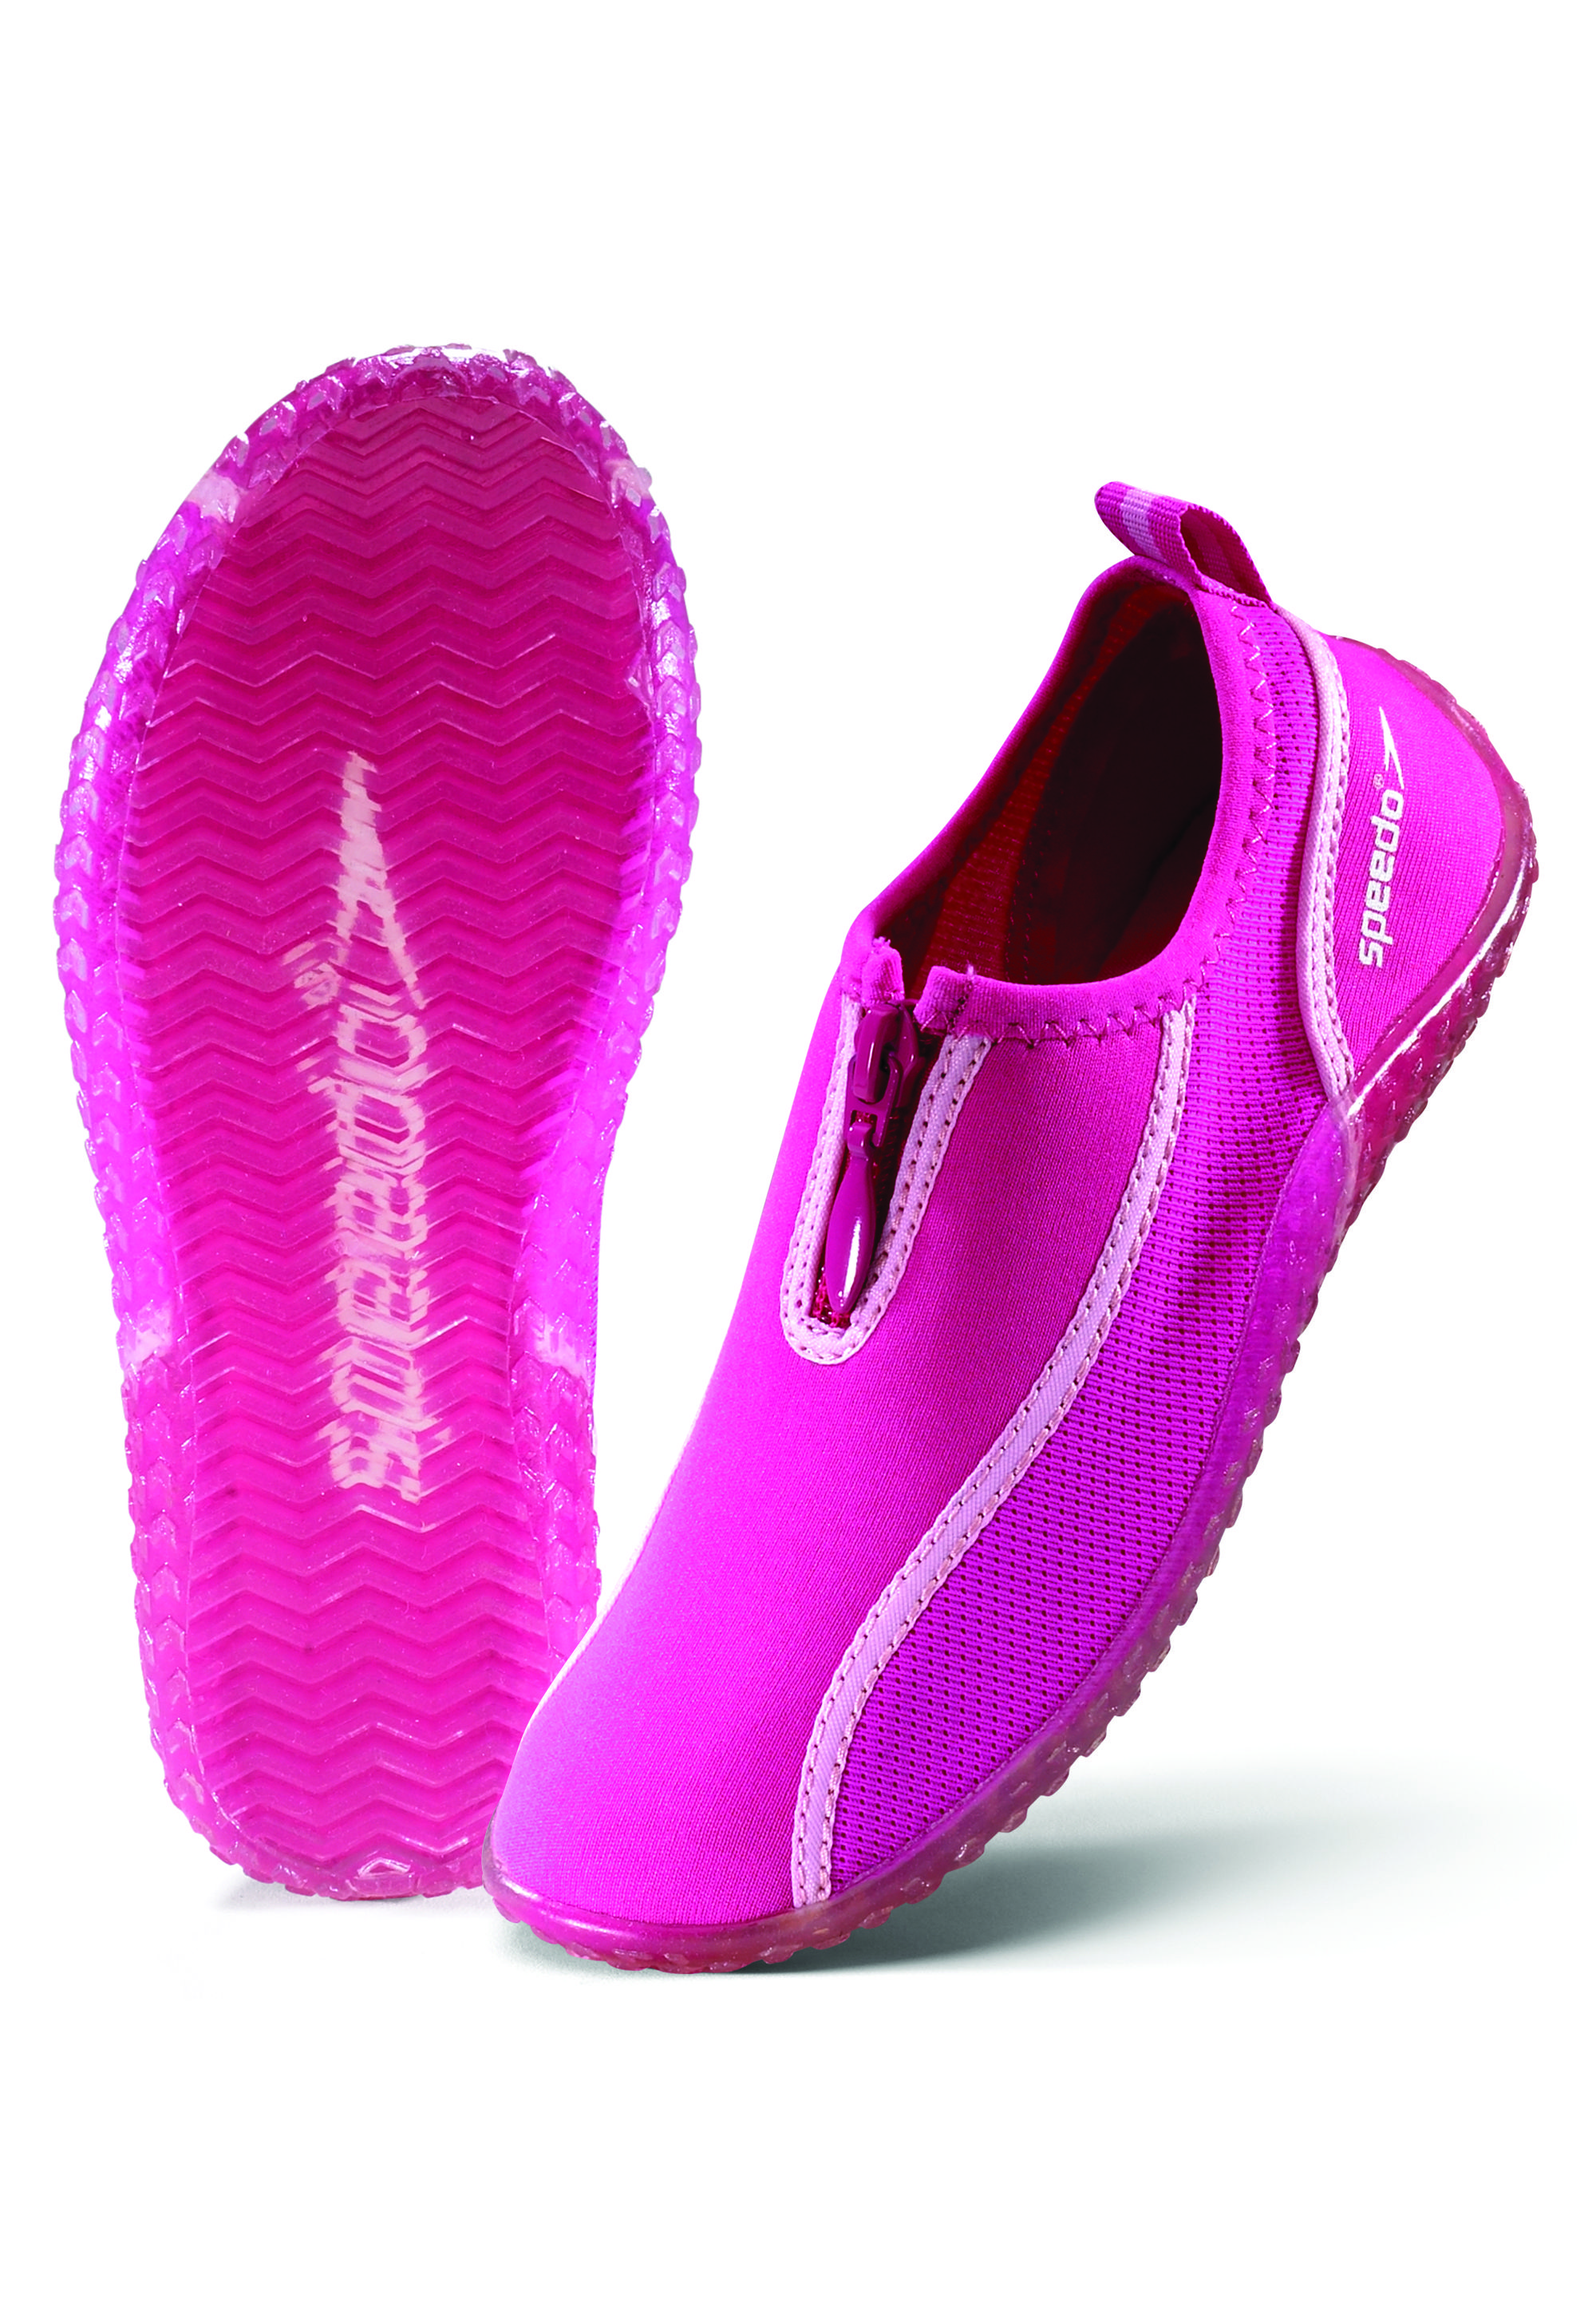 Speedo Wave Walker Zip youth swimwear shoes Swim Wear